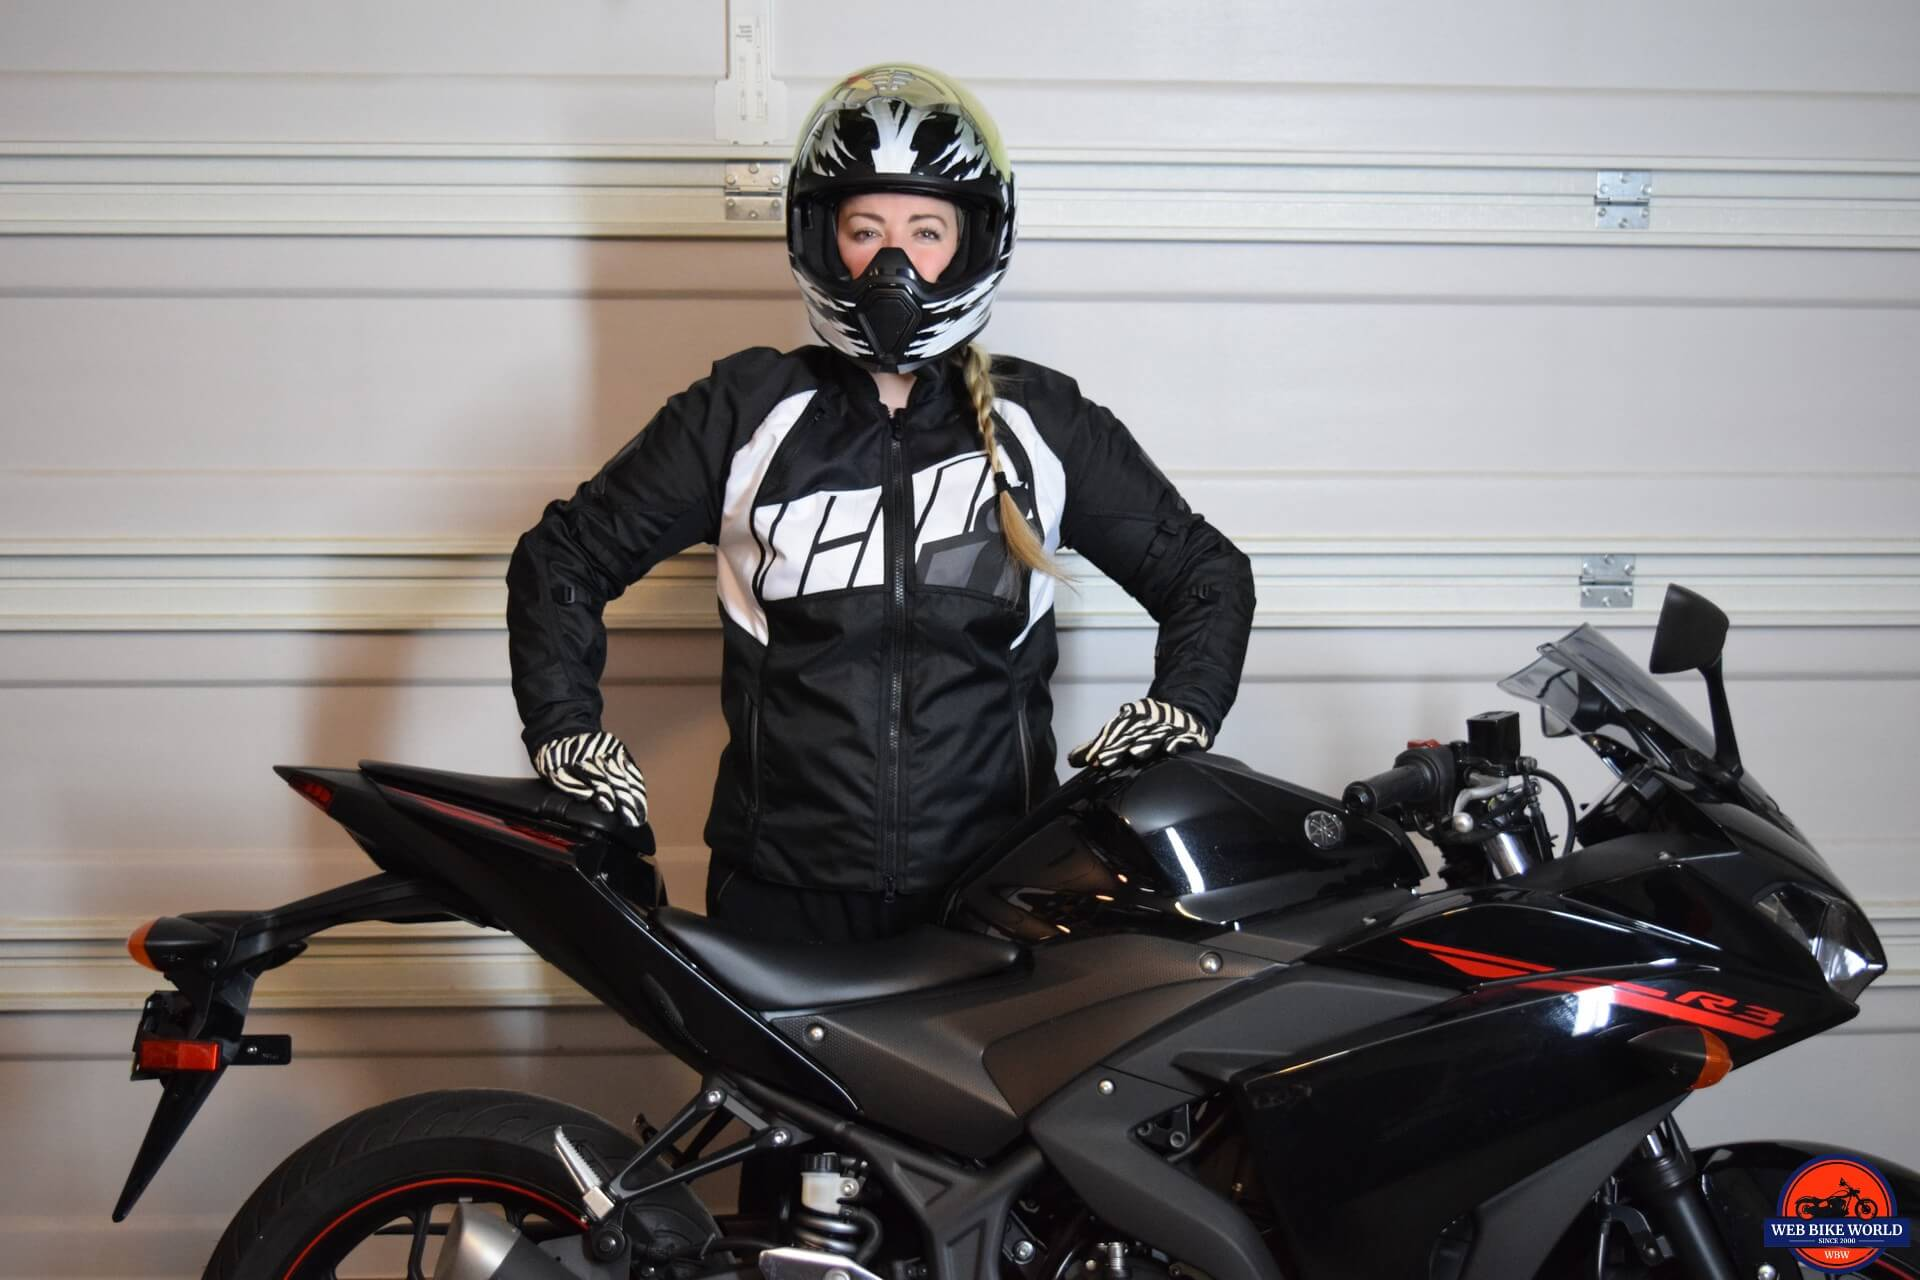 ICON Women's Automag 2 Jacket worn by Brittany next to her motorcycle